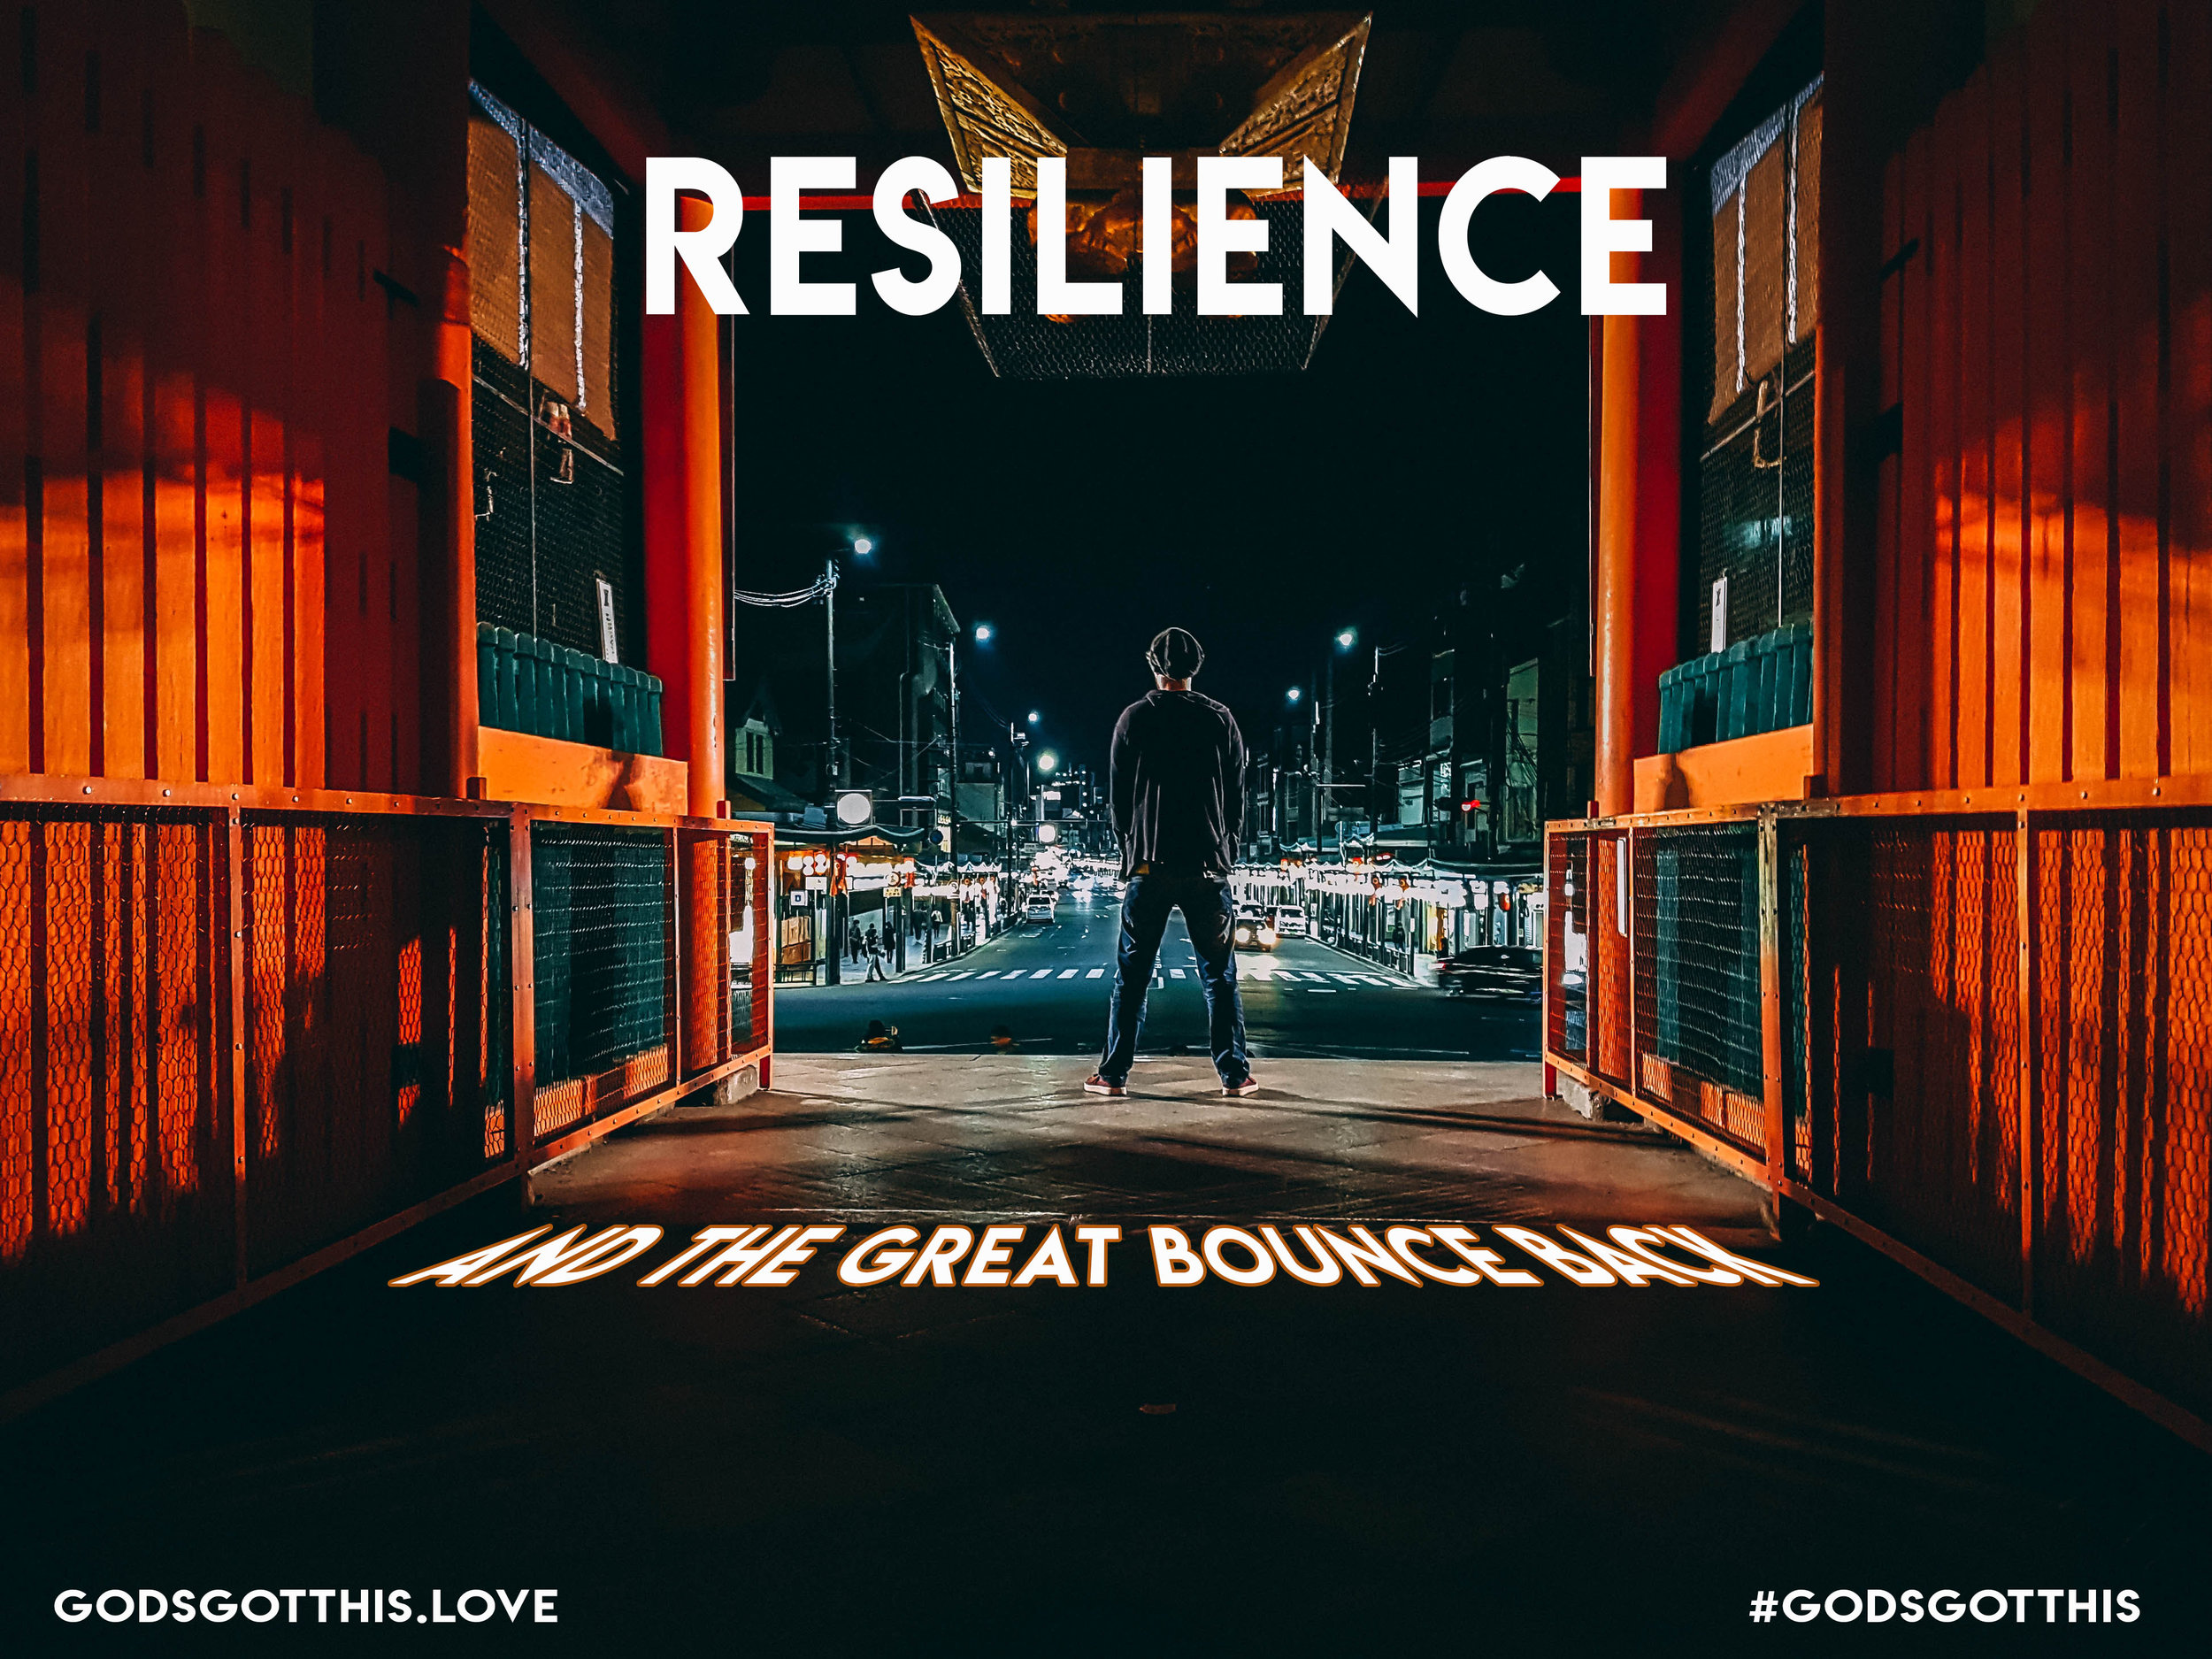 RESILIENCE AND THE GREAT BOUNCE BACK